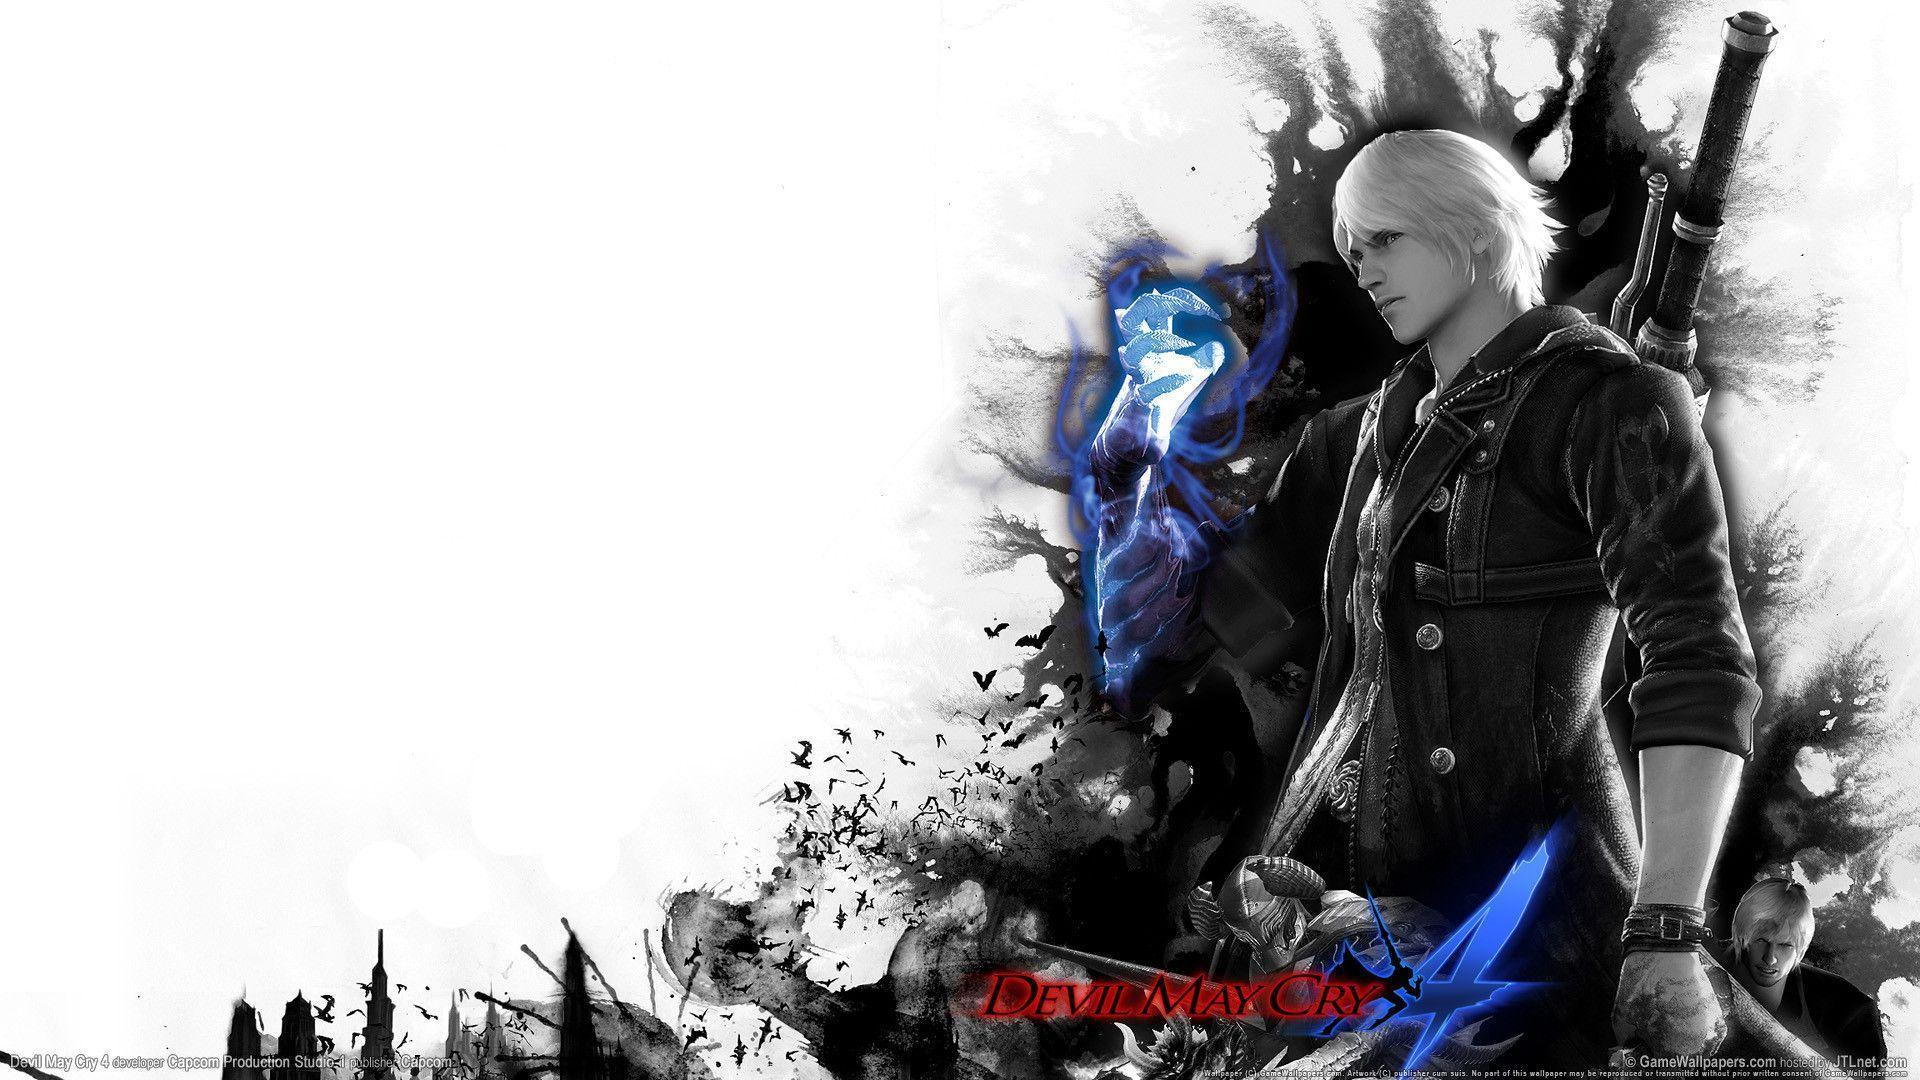 PS3 Wallpapers 1080p